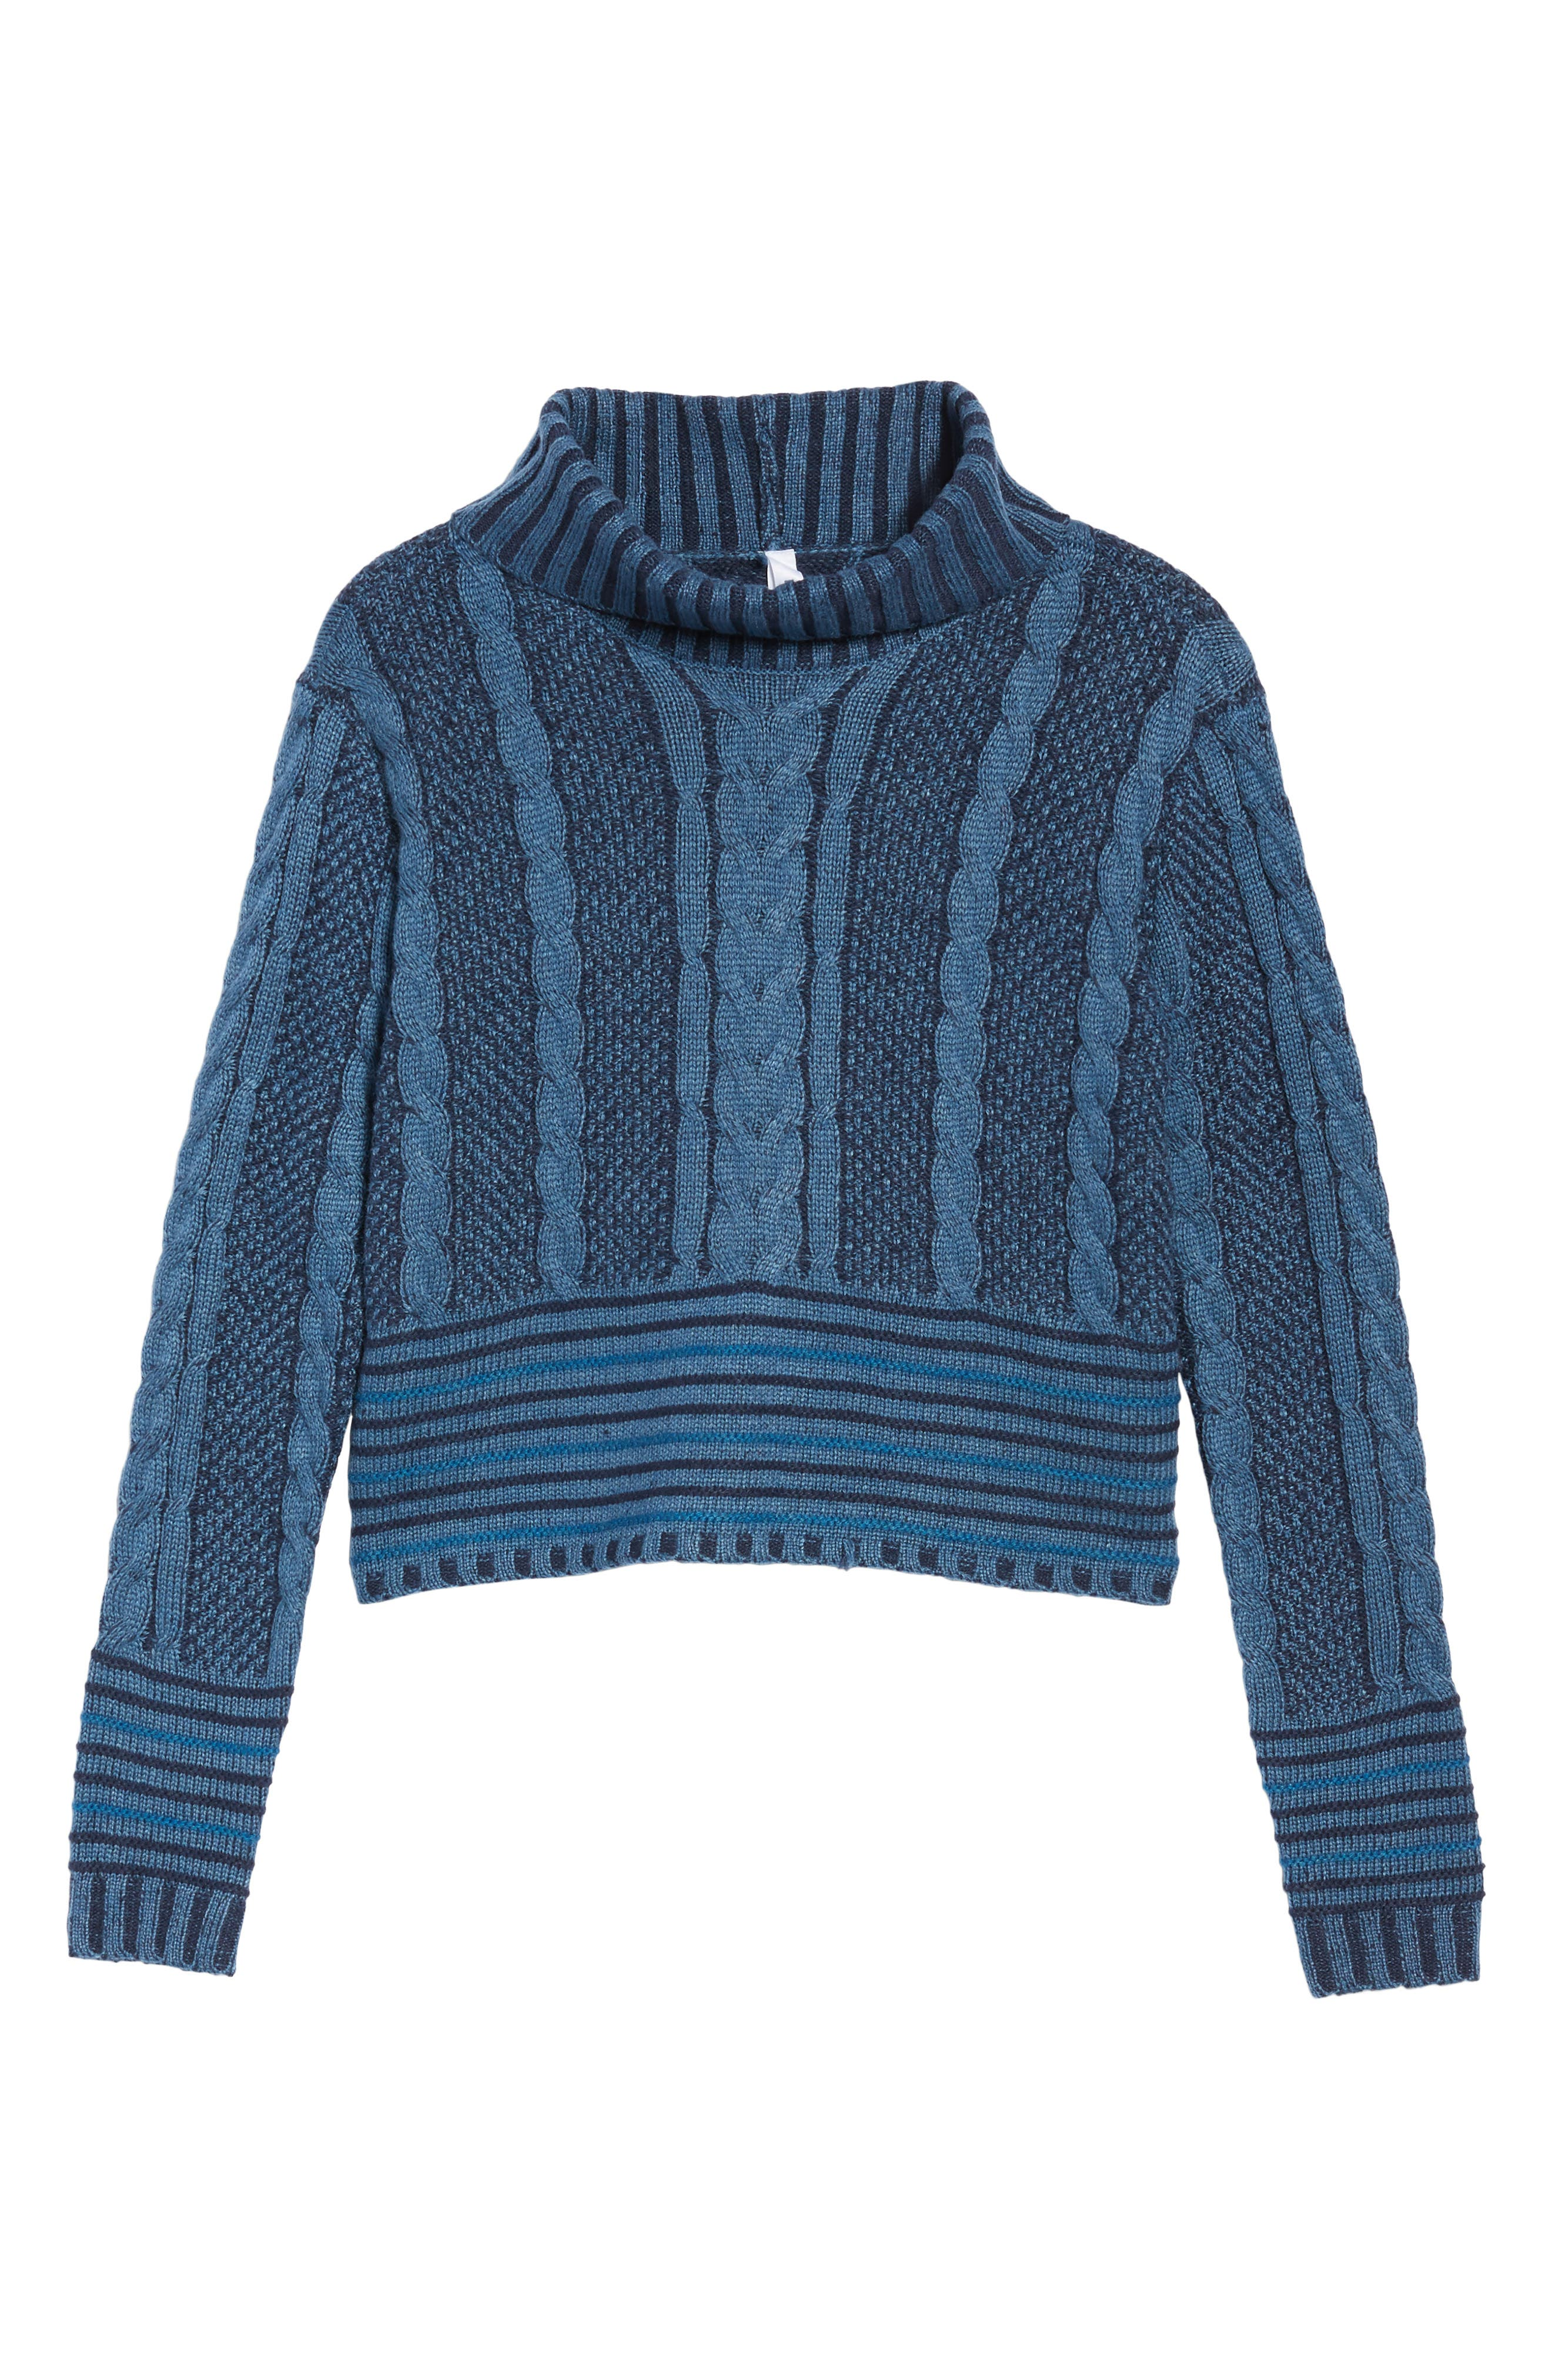 Mix Up Knit Sweater,                             Alternate thumbnail 6, color,                             400